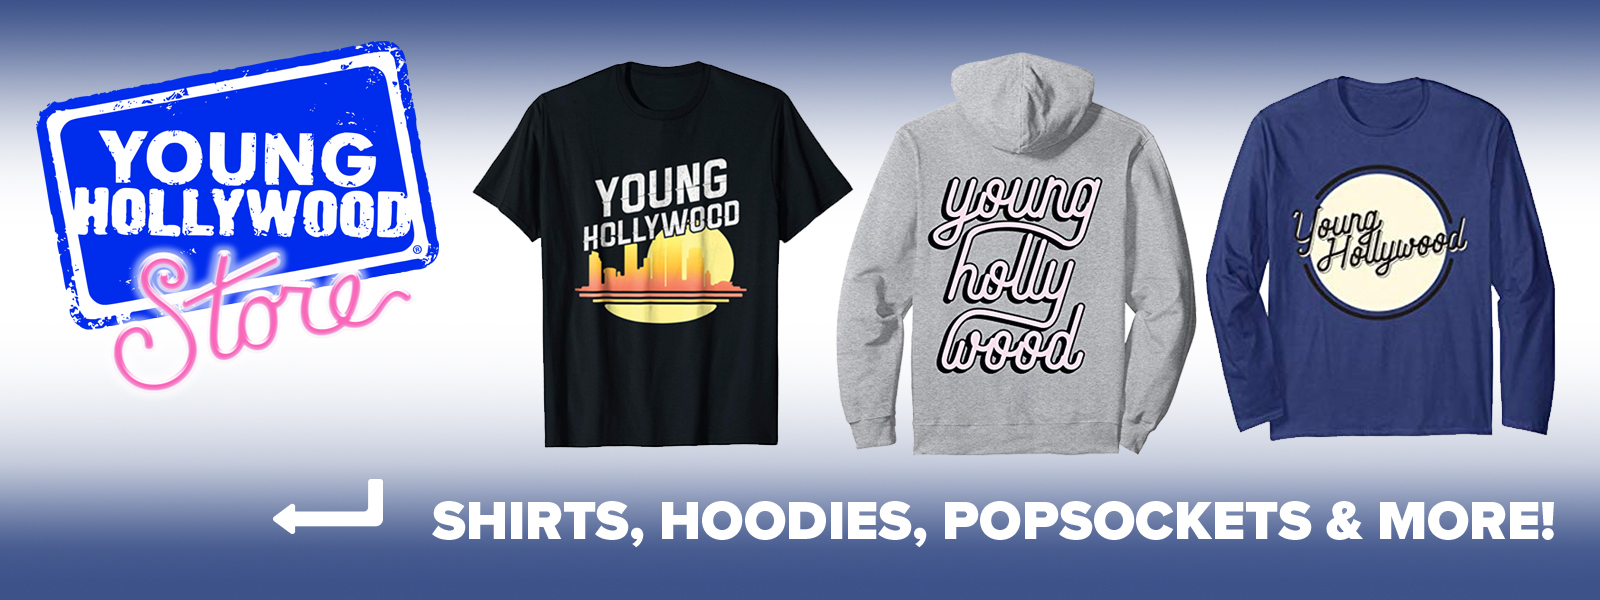 Purchase YH Gear Here!